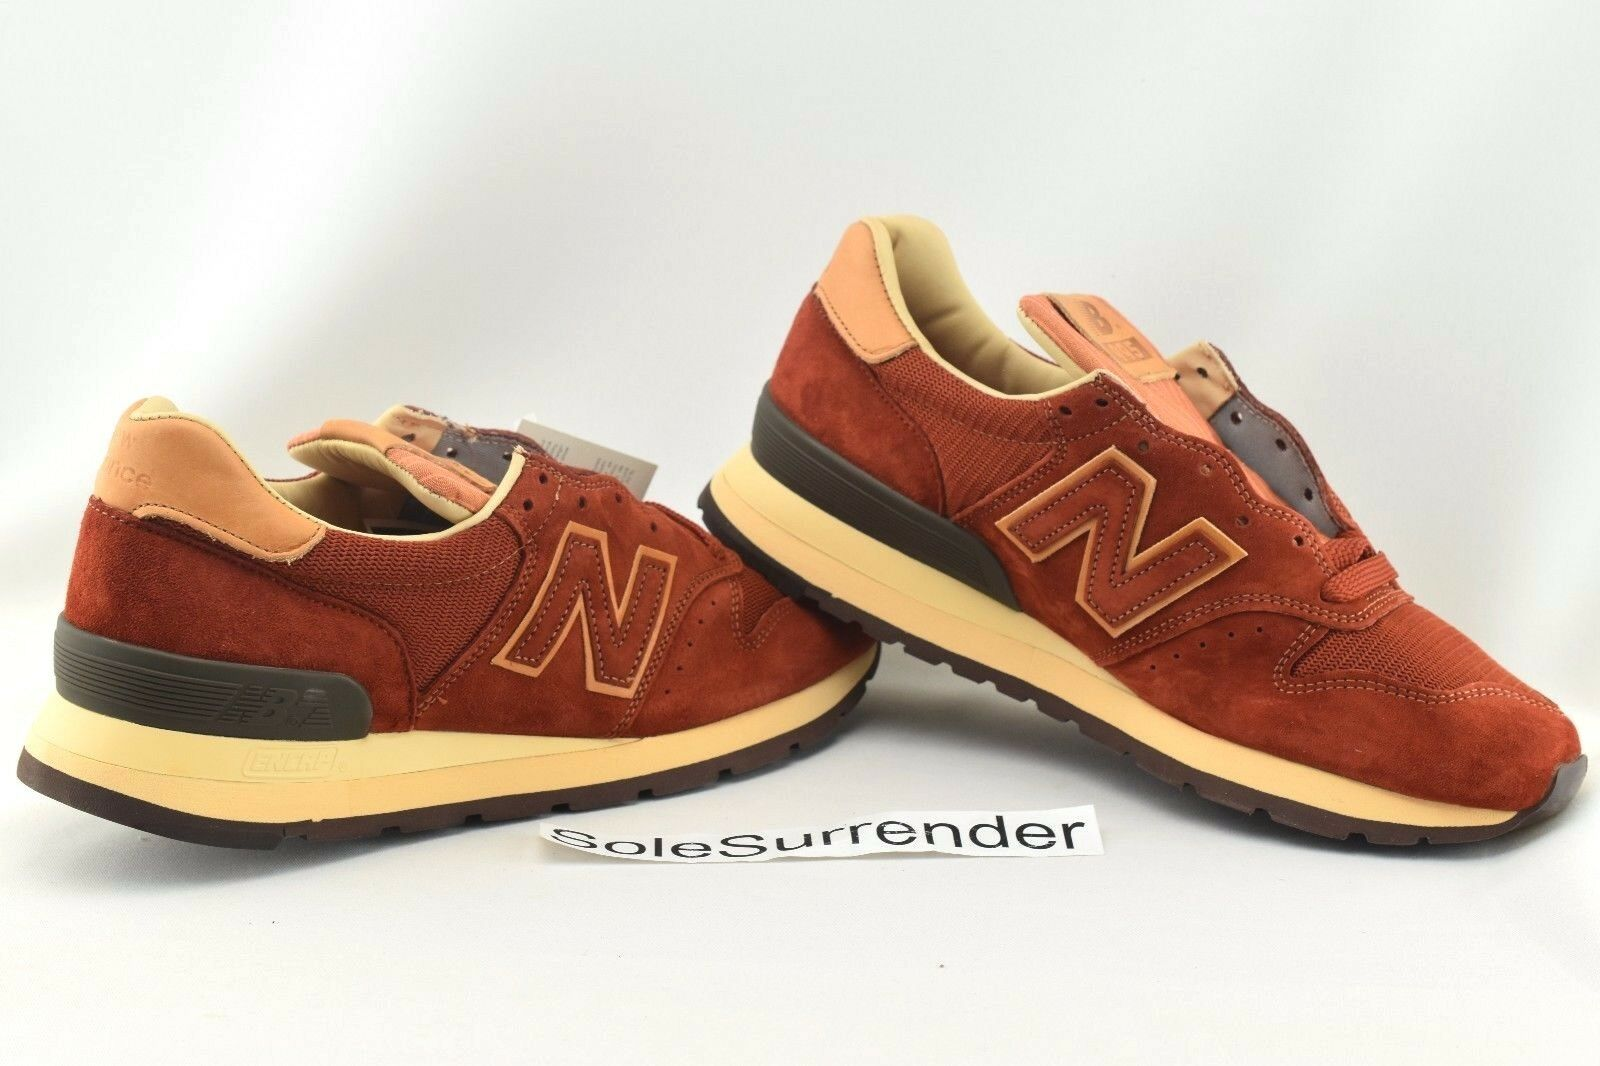 New Balance 995 Baseball Pack m995dbg - tamaño 10 - m995dbg Pack Todd Snyder Rust tan Marrón USA 319069